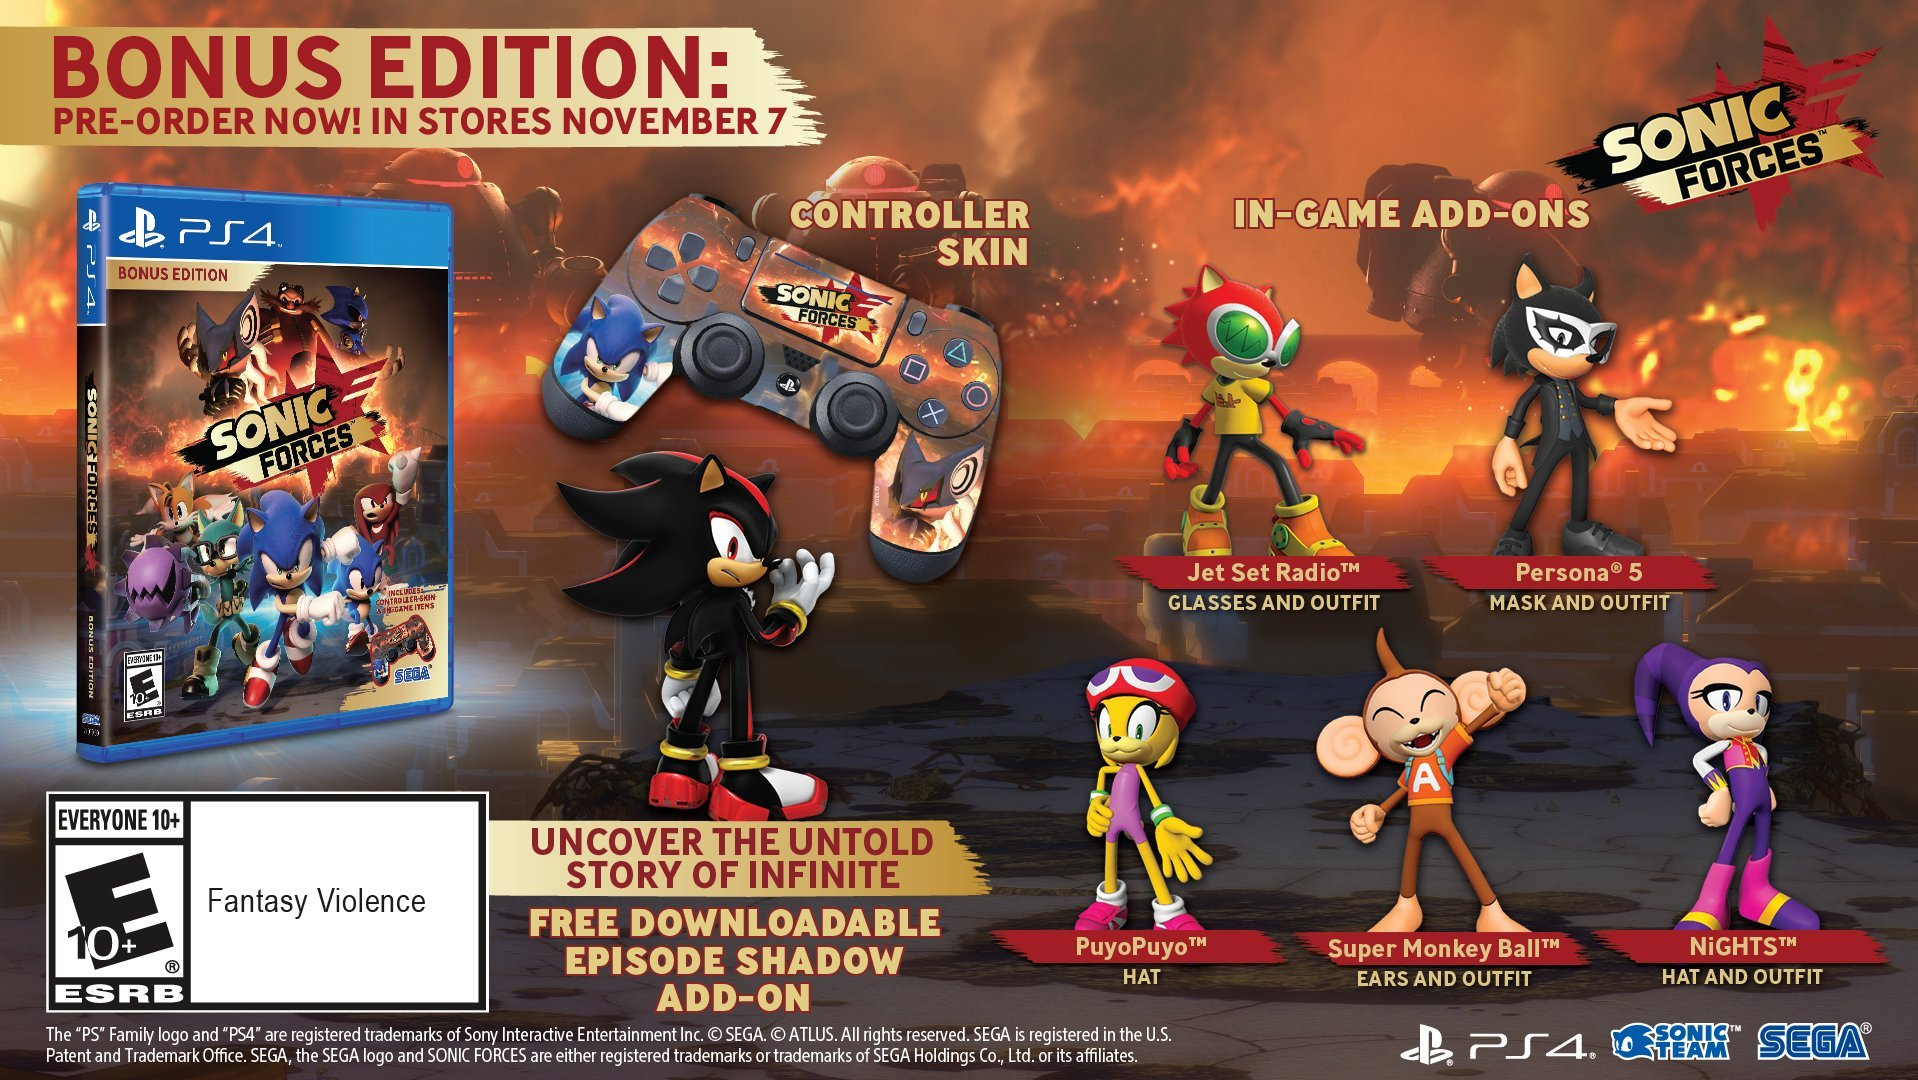 New Sonic Game For Ps4 : Sonic forces bonus edition playstation 4 brand new ps4 games sony